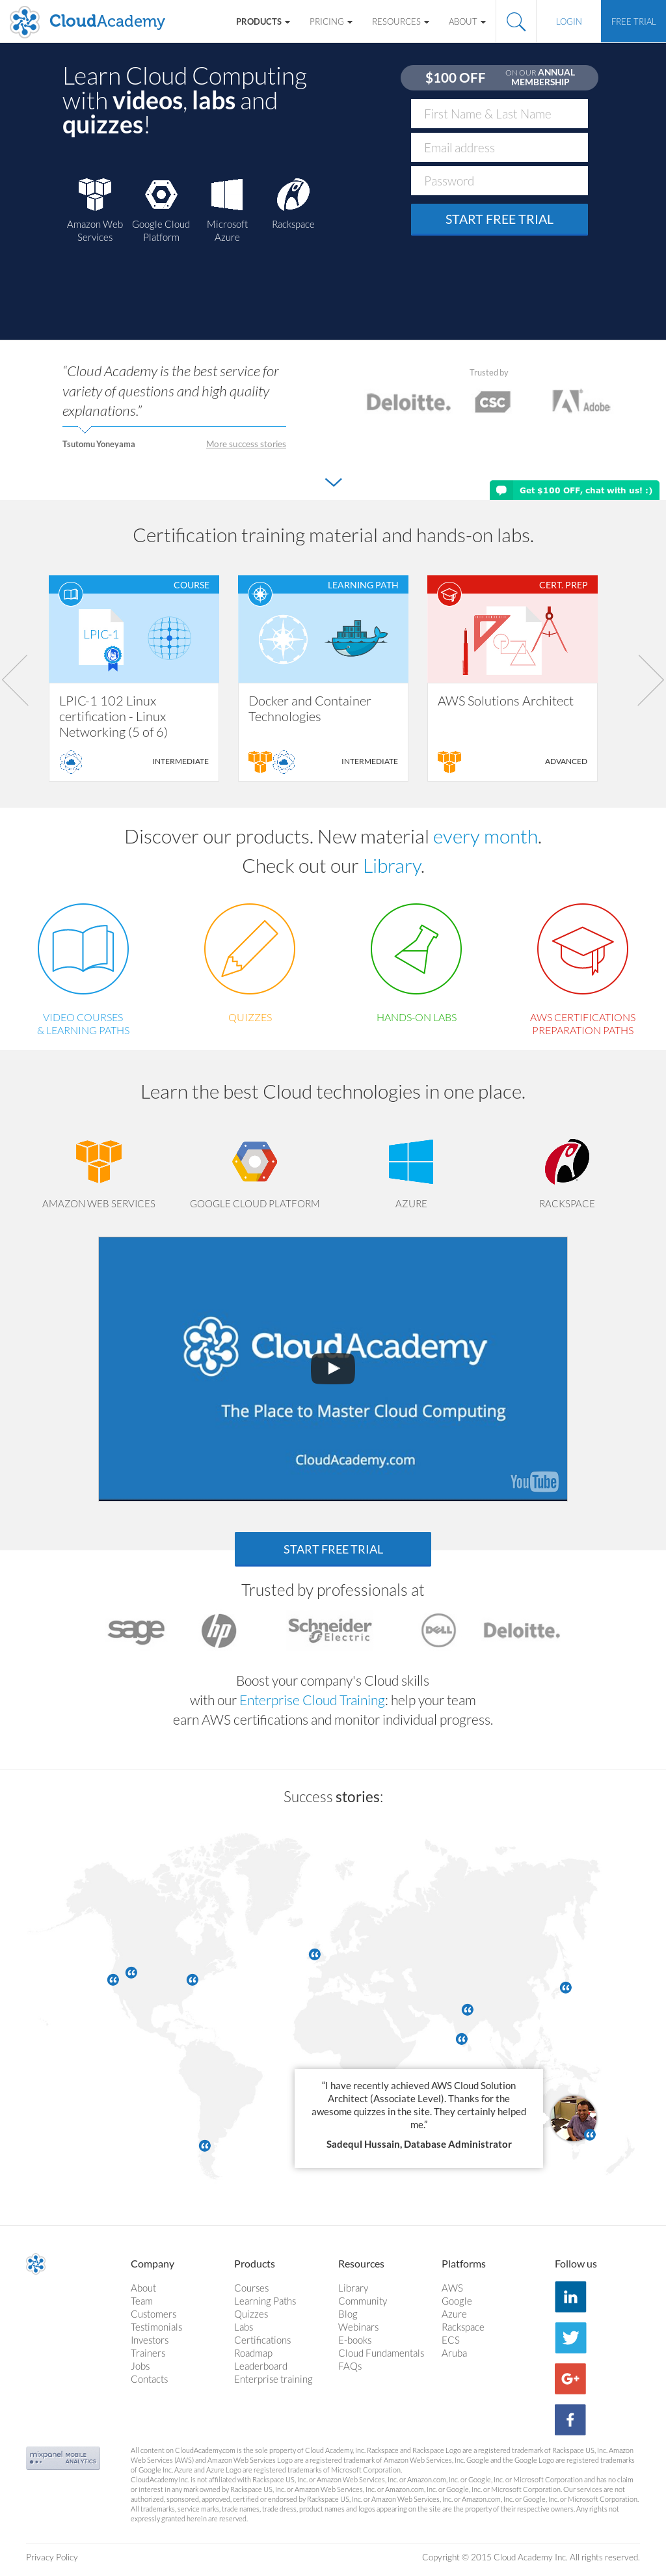 Cloud Academy Competitors, Revenue and Employees - Owler Company Profile